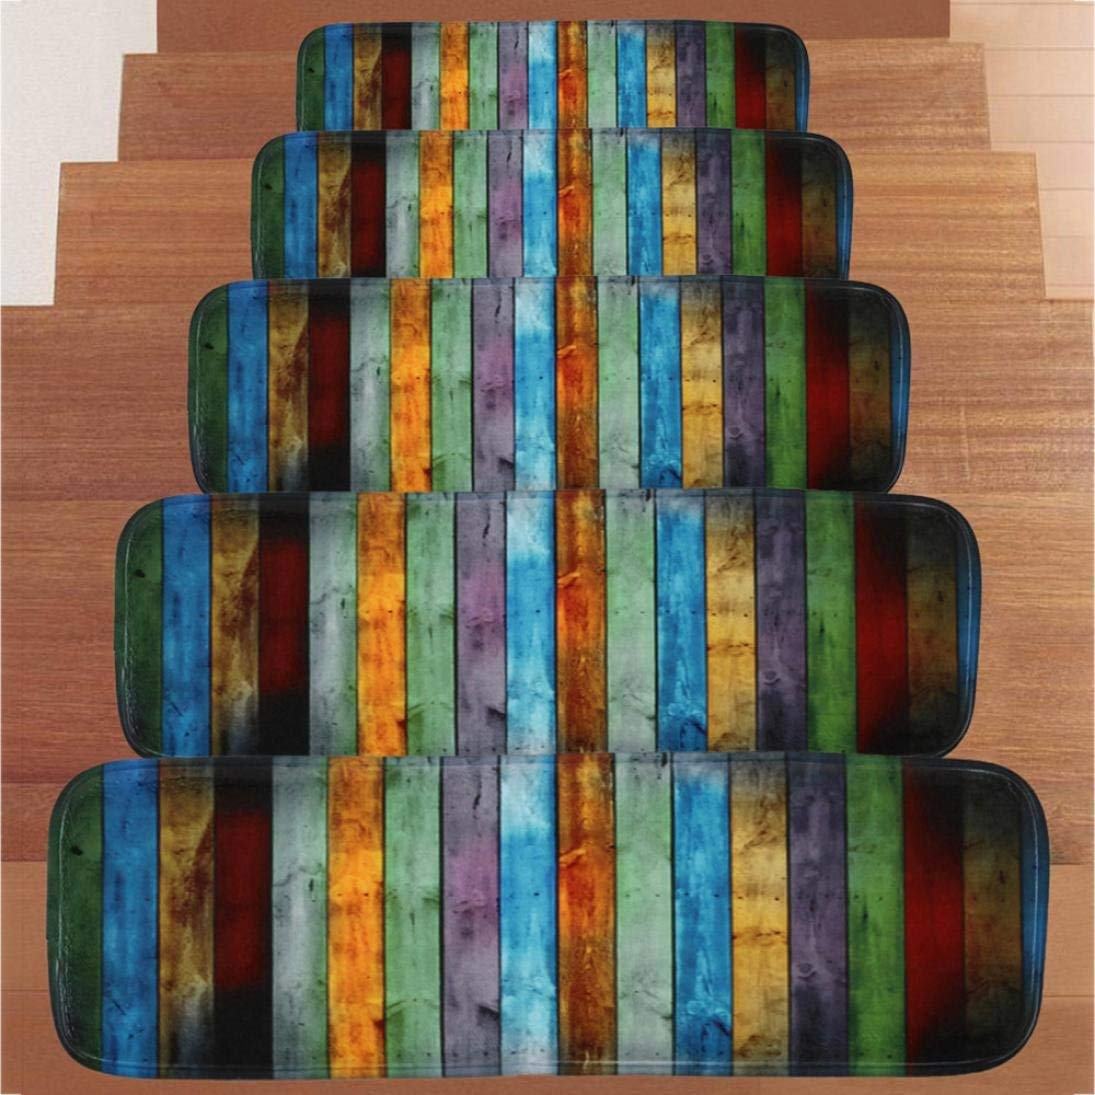 Stair Treads, Transer Indoor Phosphor Colorful Board Pattern Non Slip Rubber Backing Arctic Skid-Resistant Carpet Stair Rug/Covers/Mats - 27.6x8.7 Inch - Pack of 5 (Colorful Board)